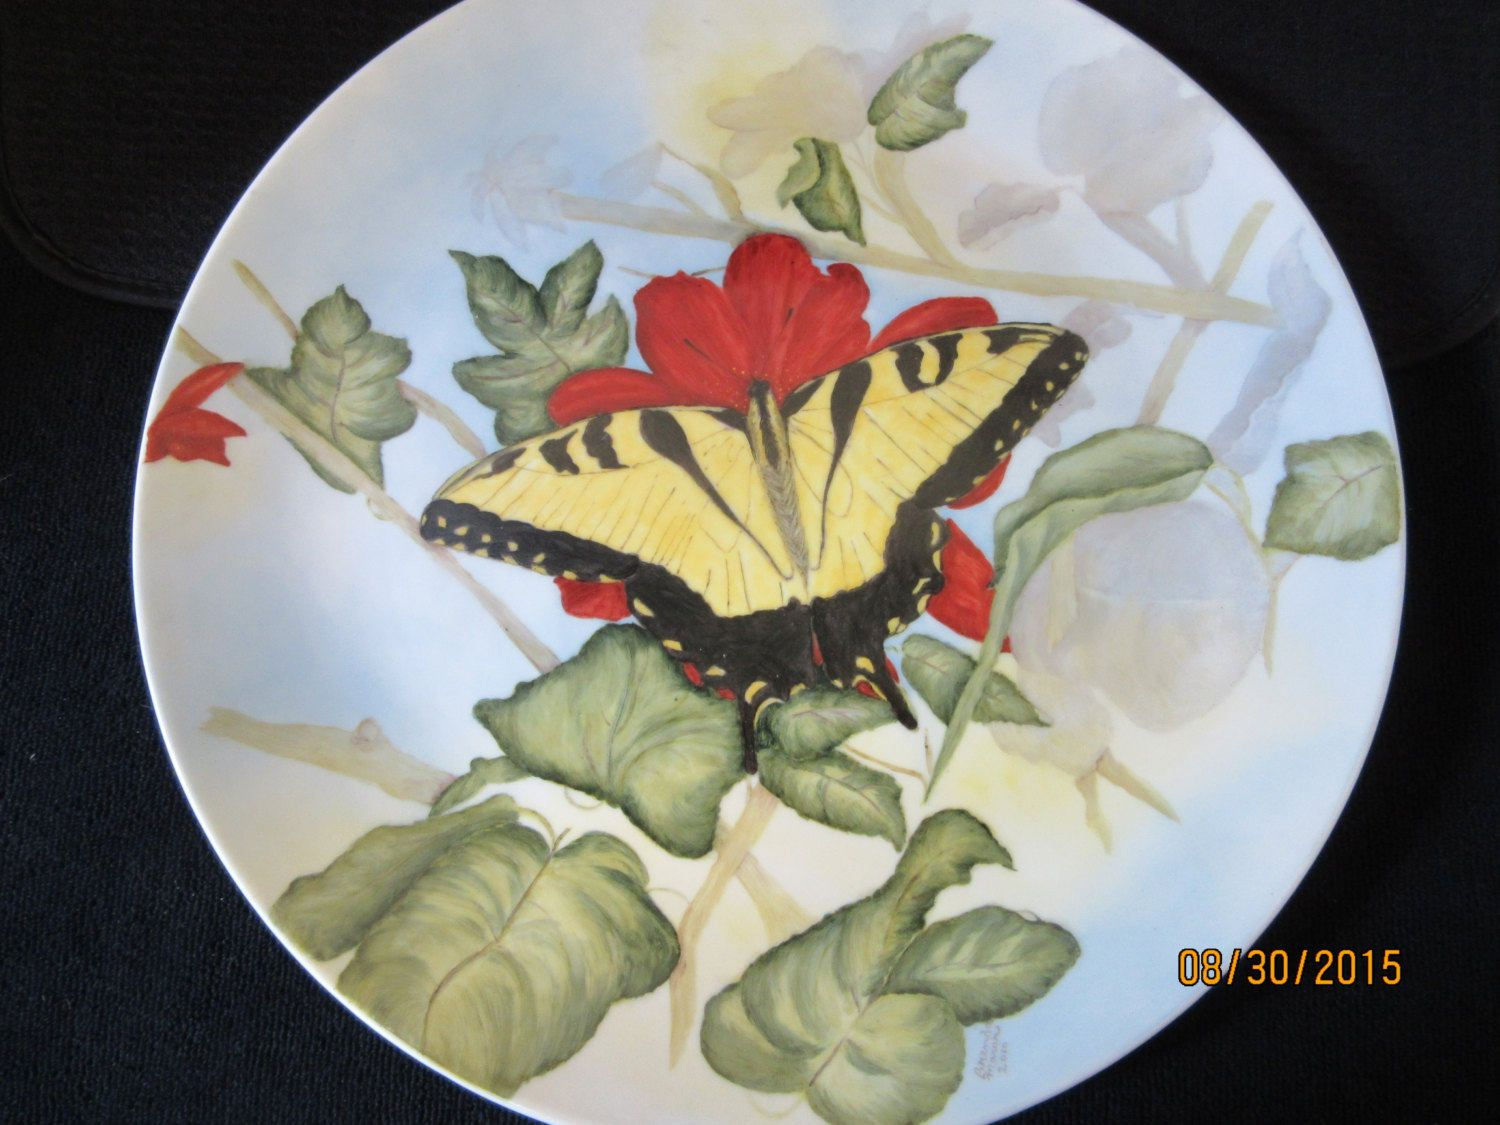 Large Decorative Ceramic Plates Cake Plate Large Tray Ceramic Porcelain Collectible Art Home Decor